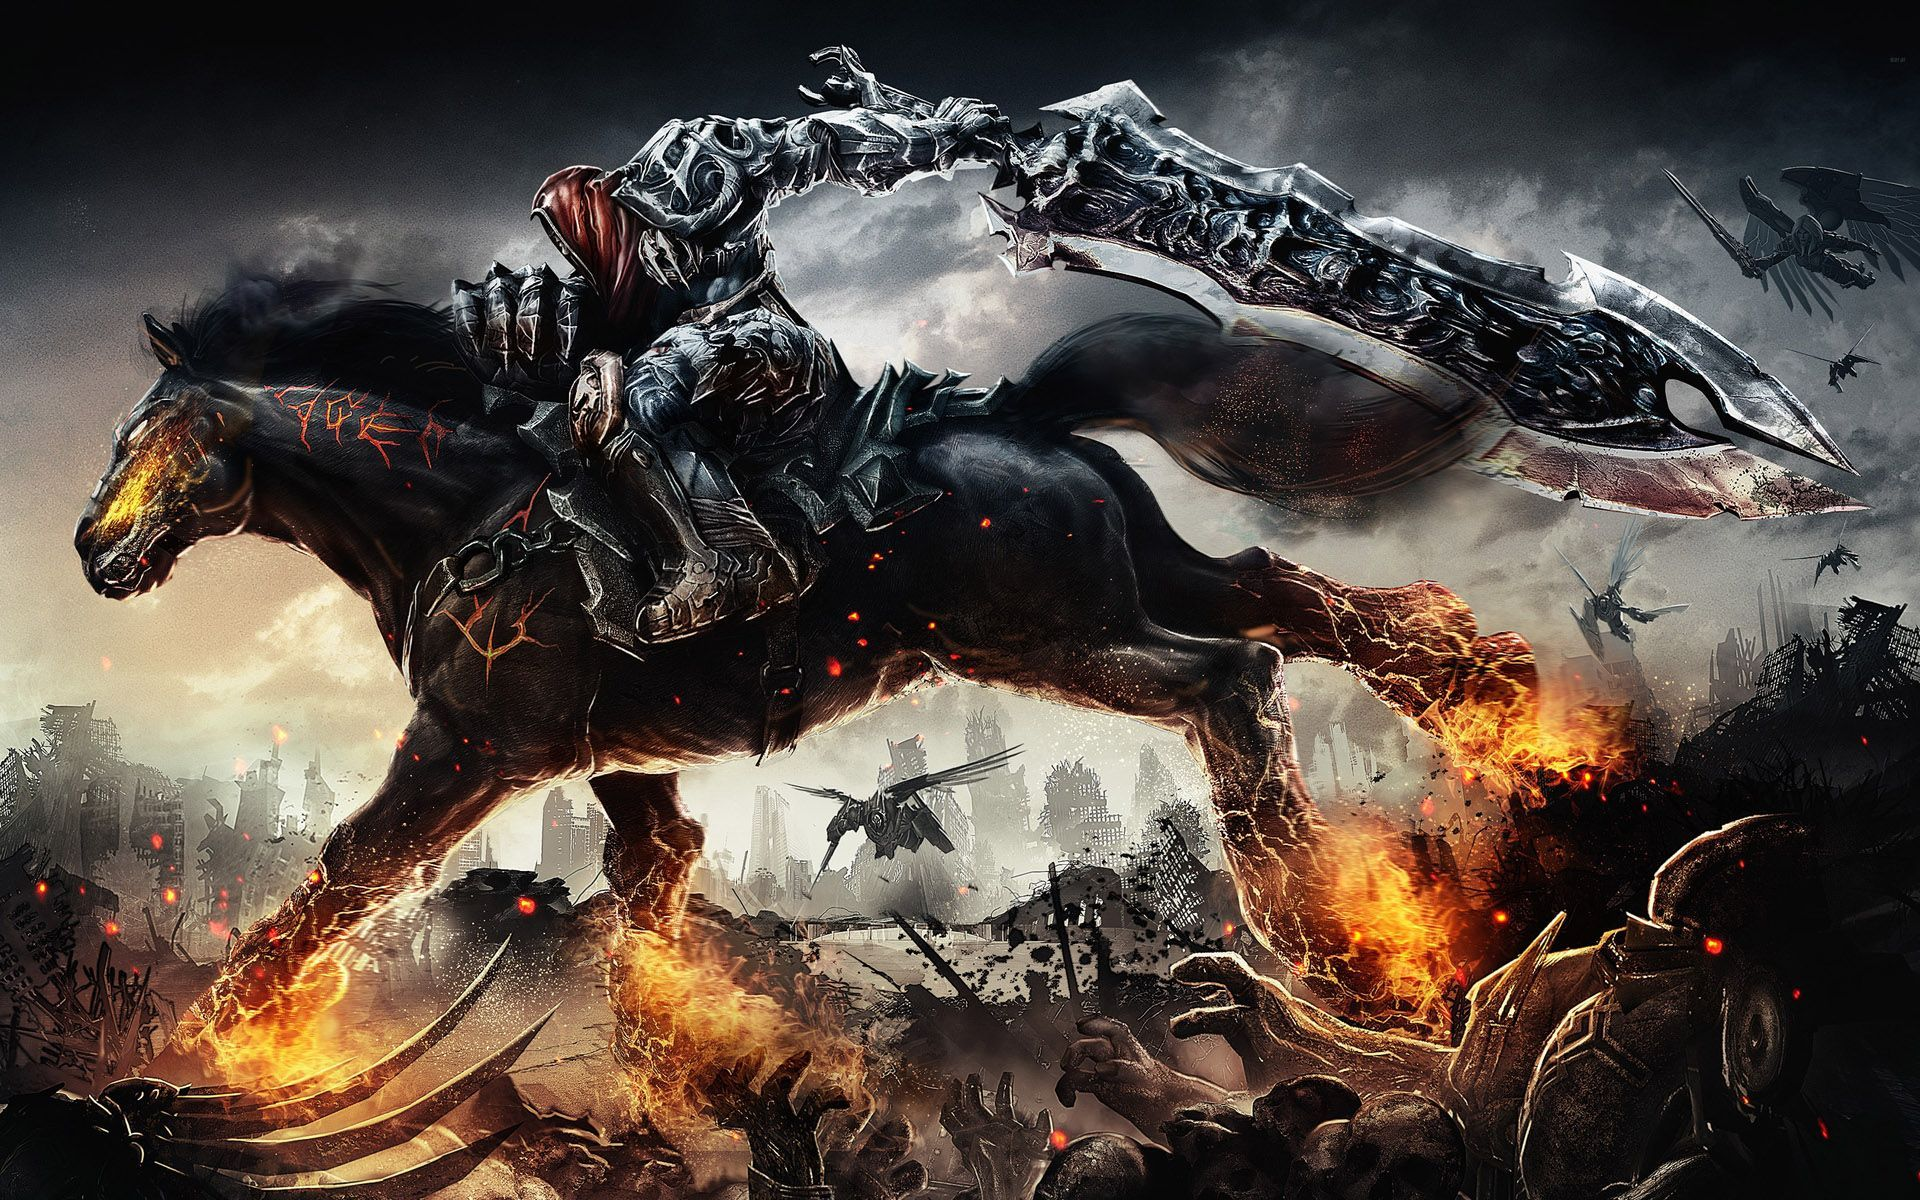 Darksiders wallpaper 14043 1920x1200